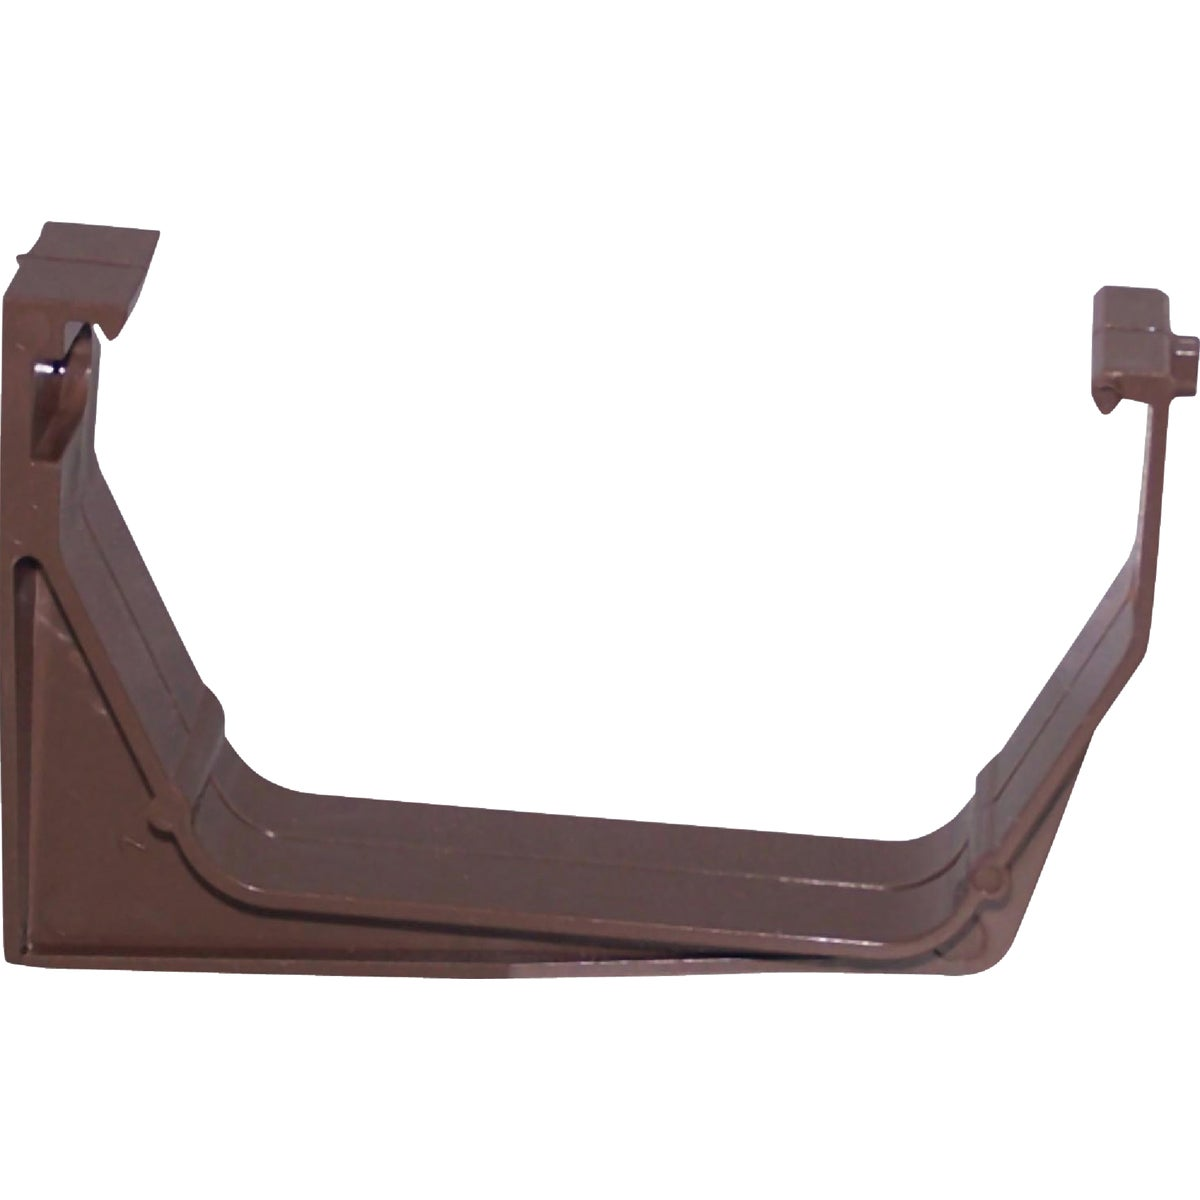 BRN HEAVY GUTTER BRACKET